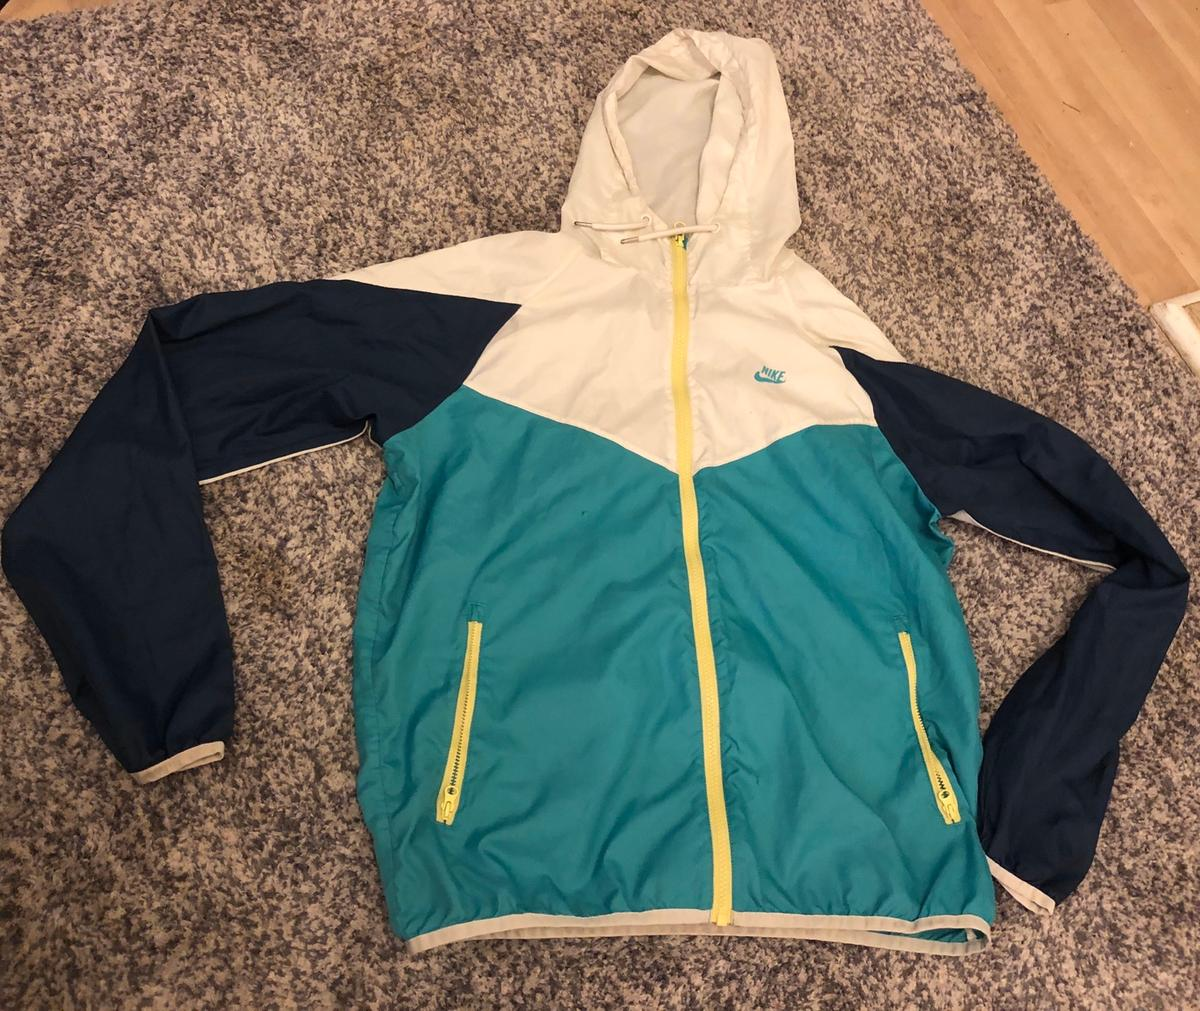 Nike jacket , slight hole in hence free  Size medium